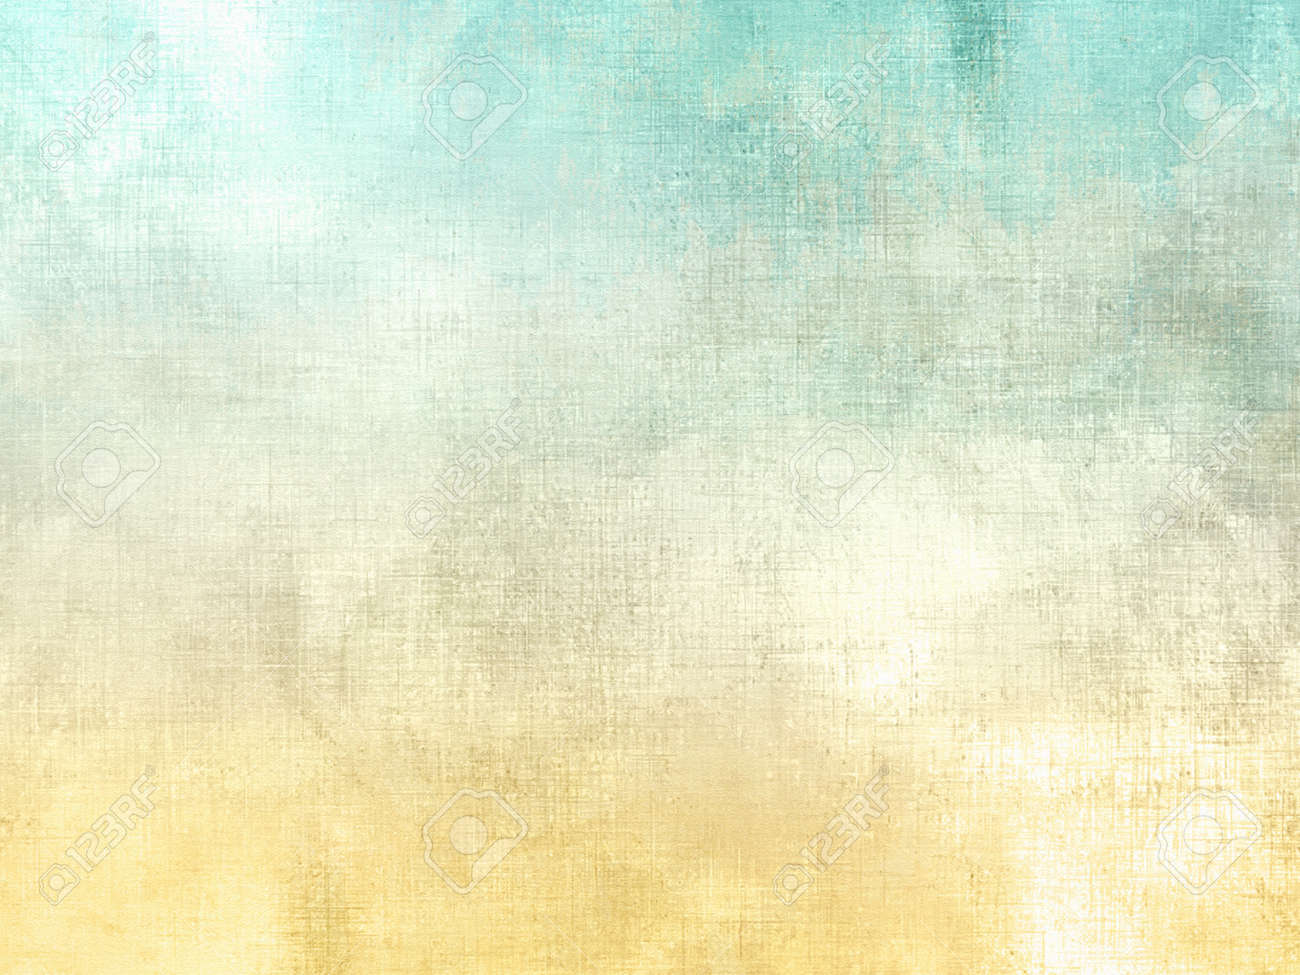 Watercolor texture in soft retro style - abstract nature spring background with yellow green gradient - 53540883